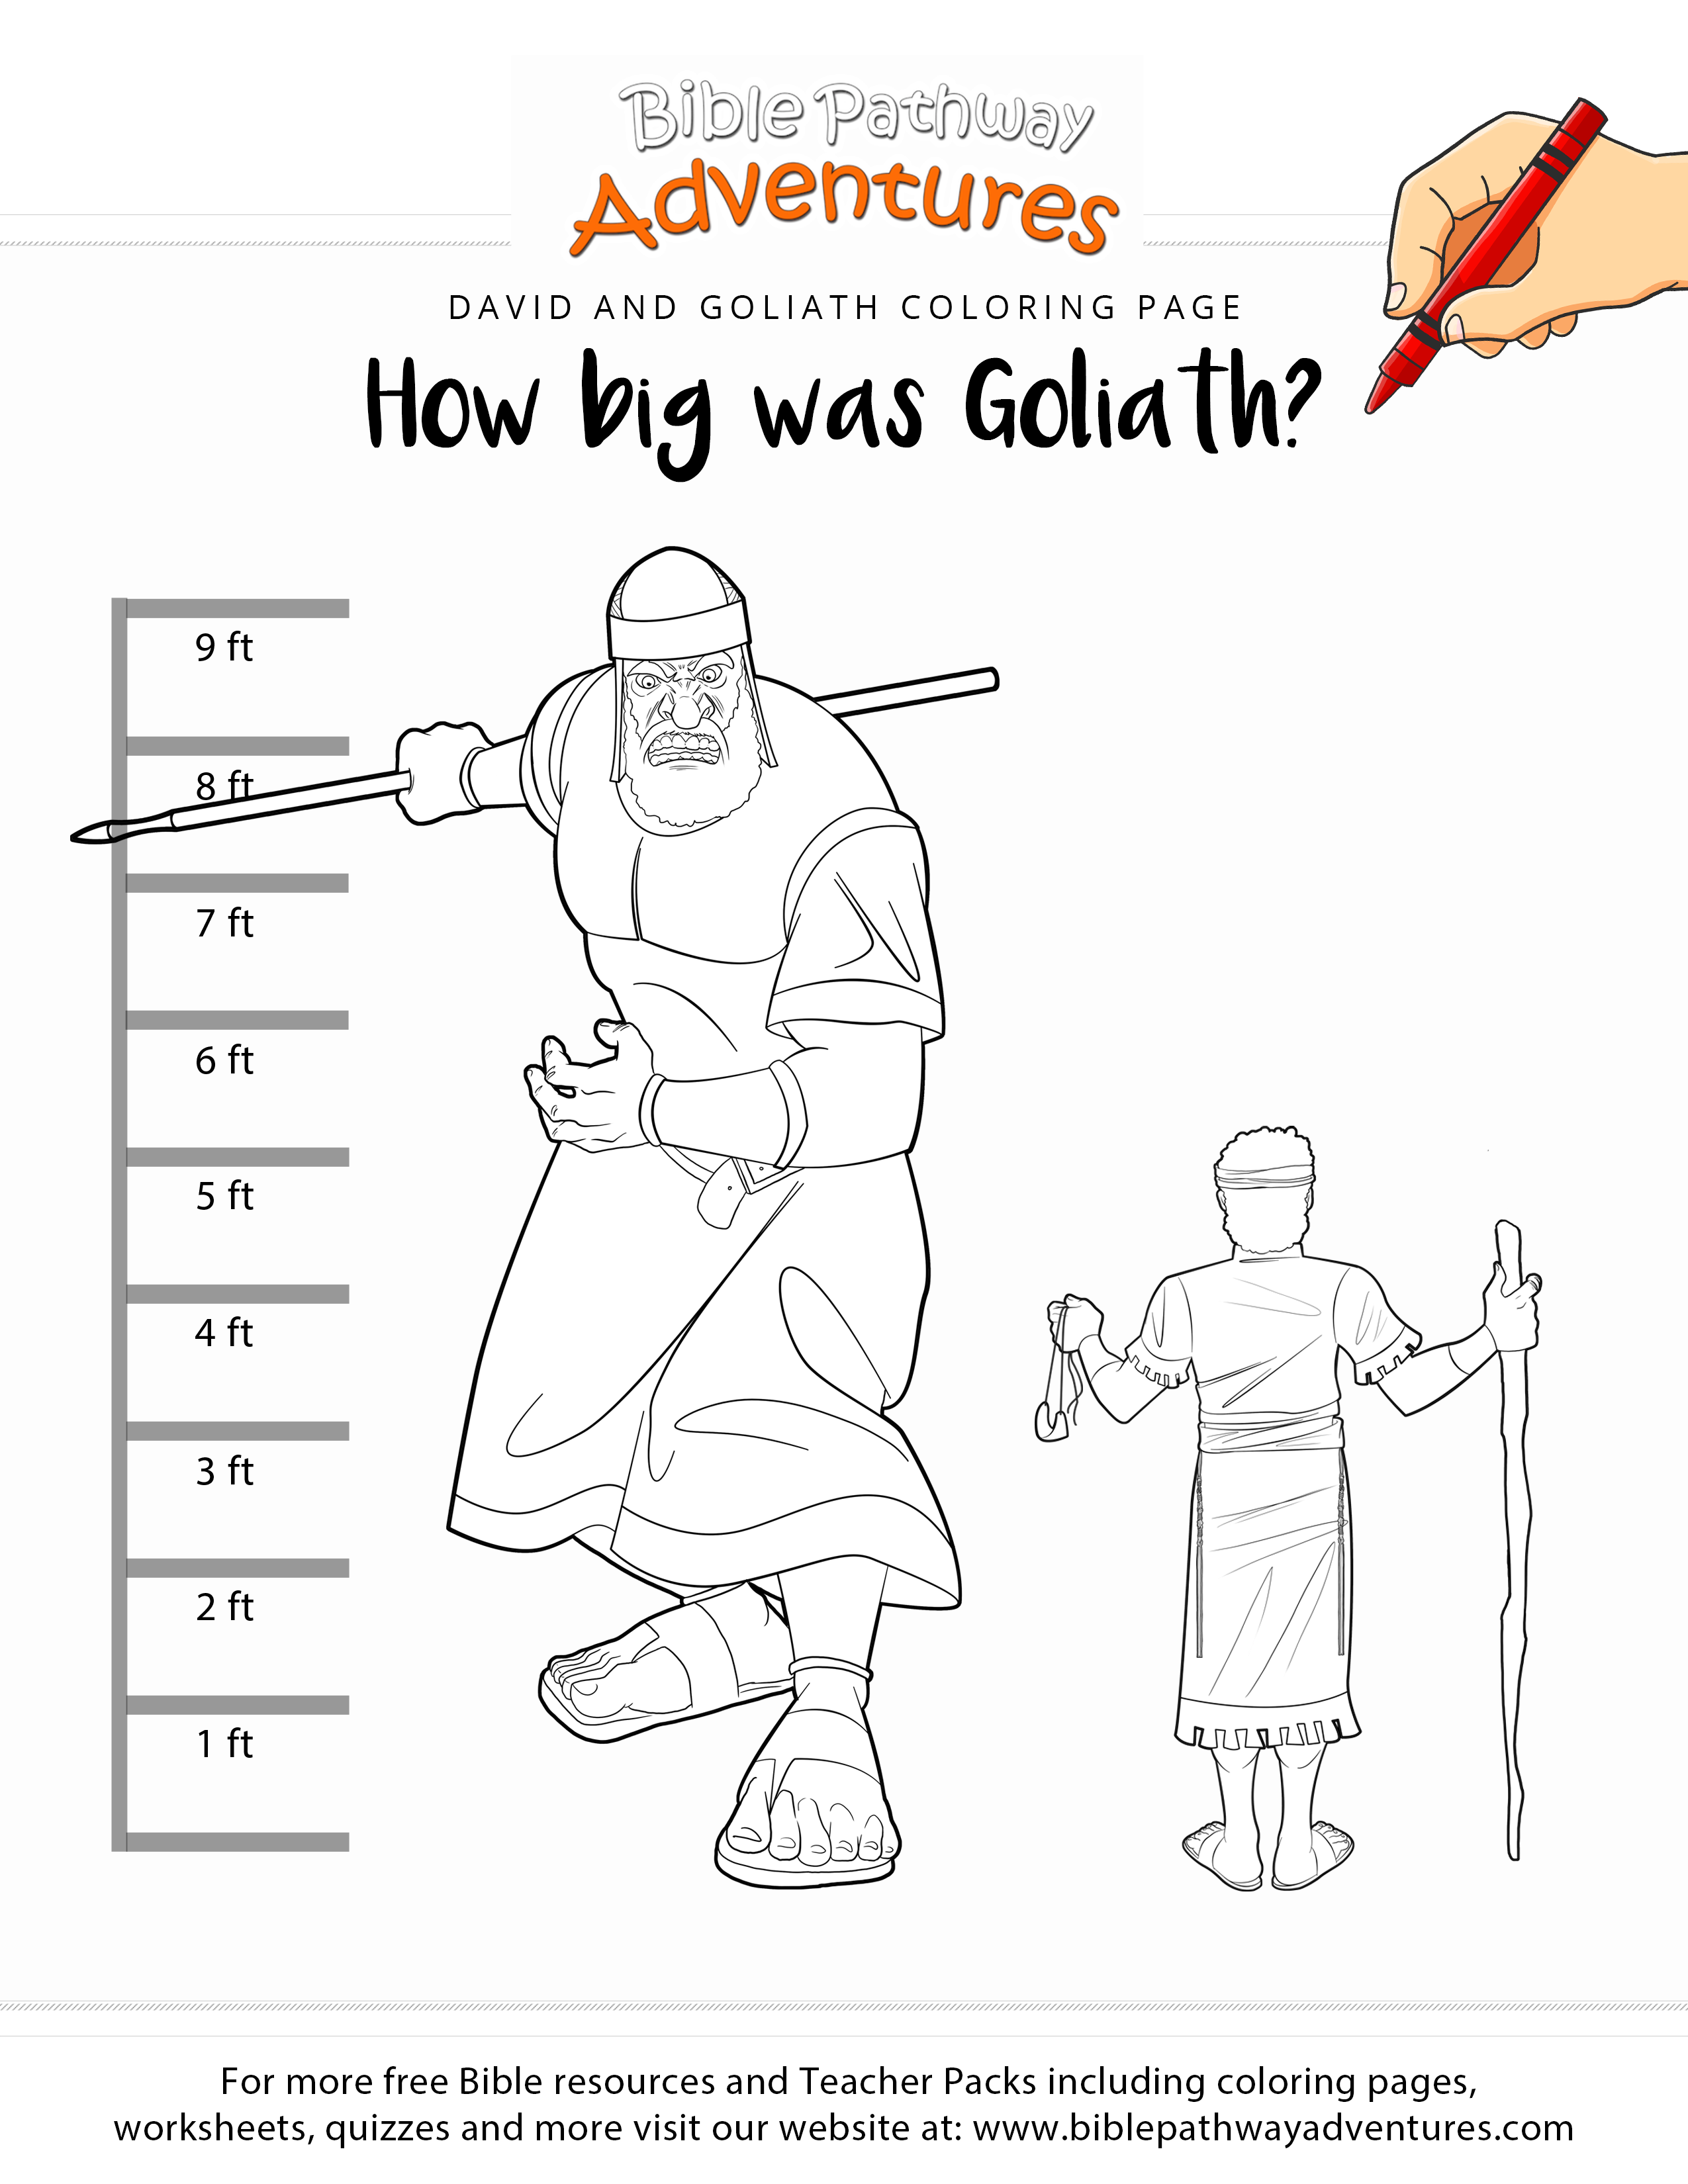 David Goliath Coloring Page For Kids Sunday School LessonsStudy IdeasFree